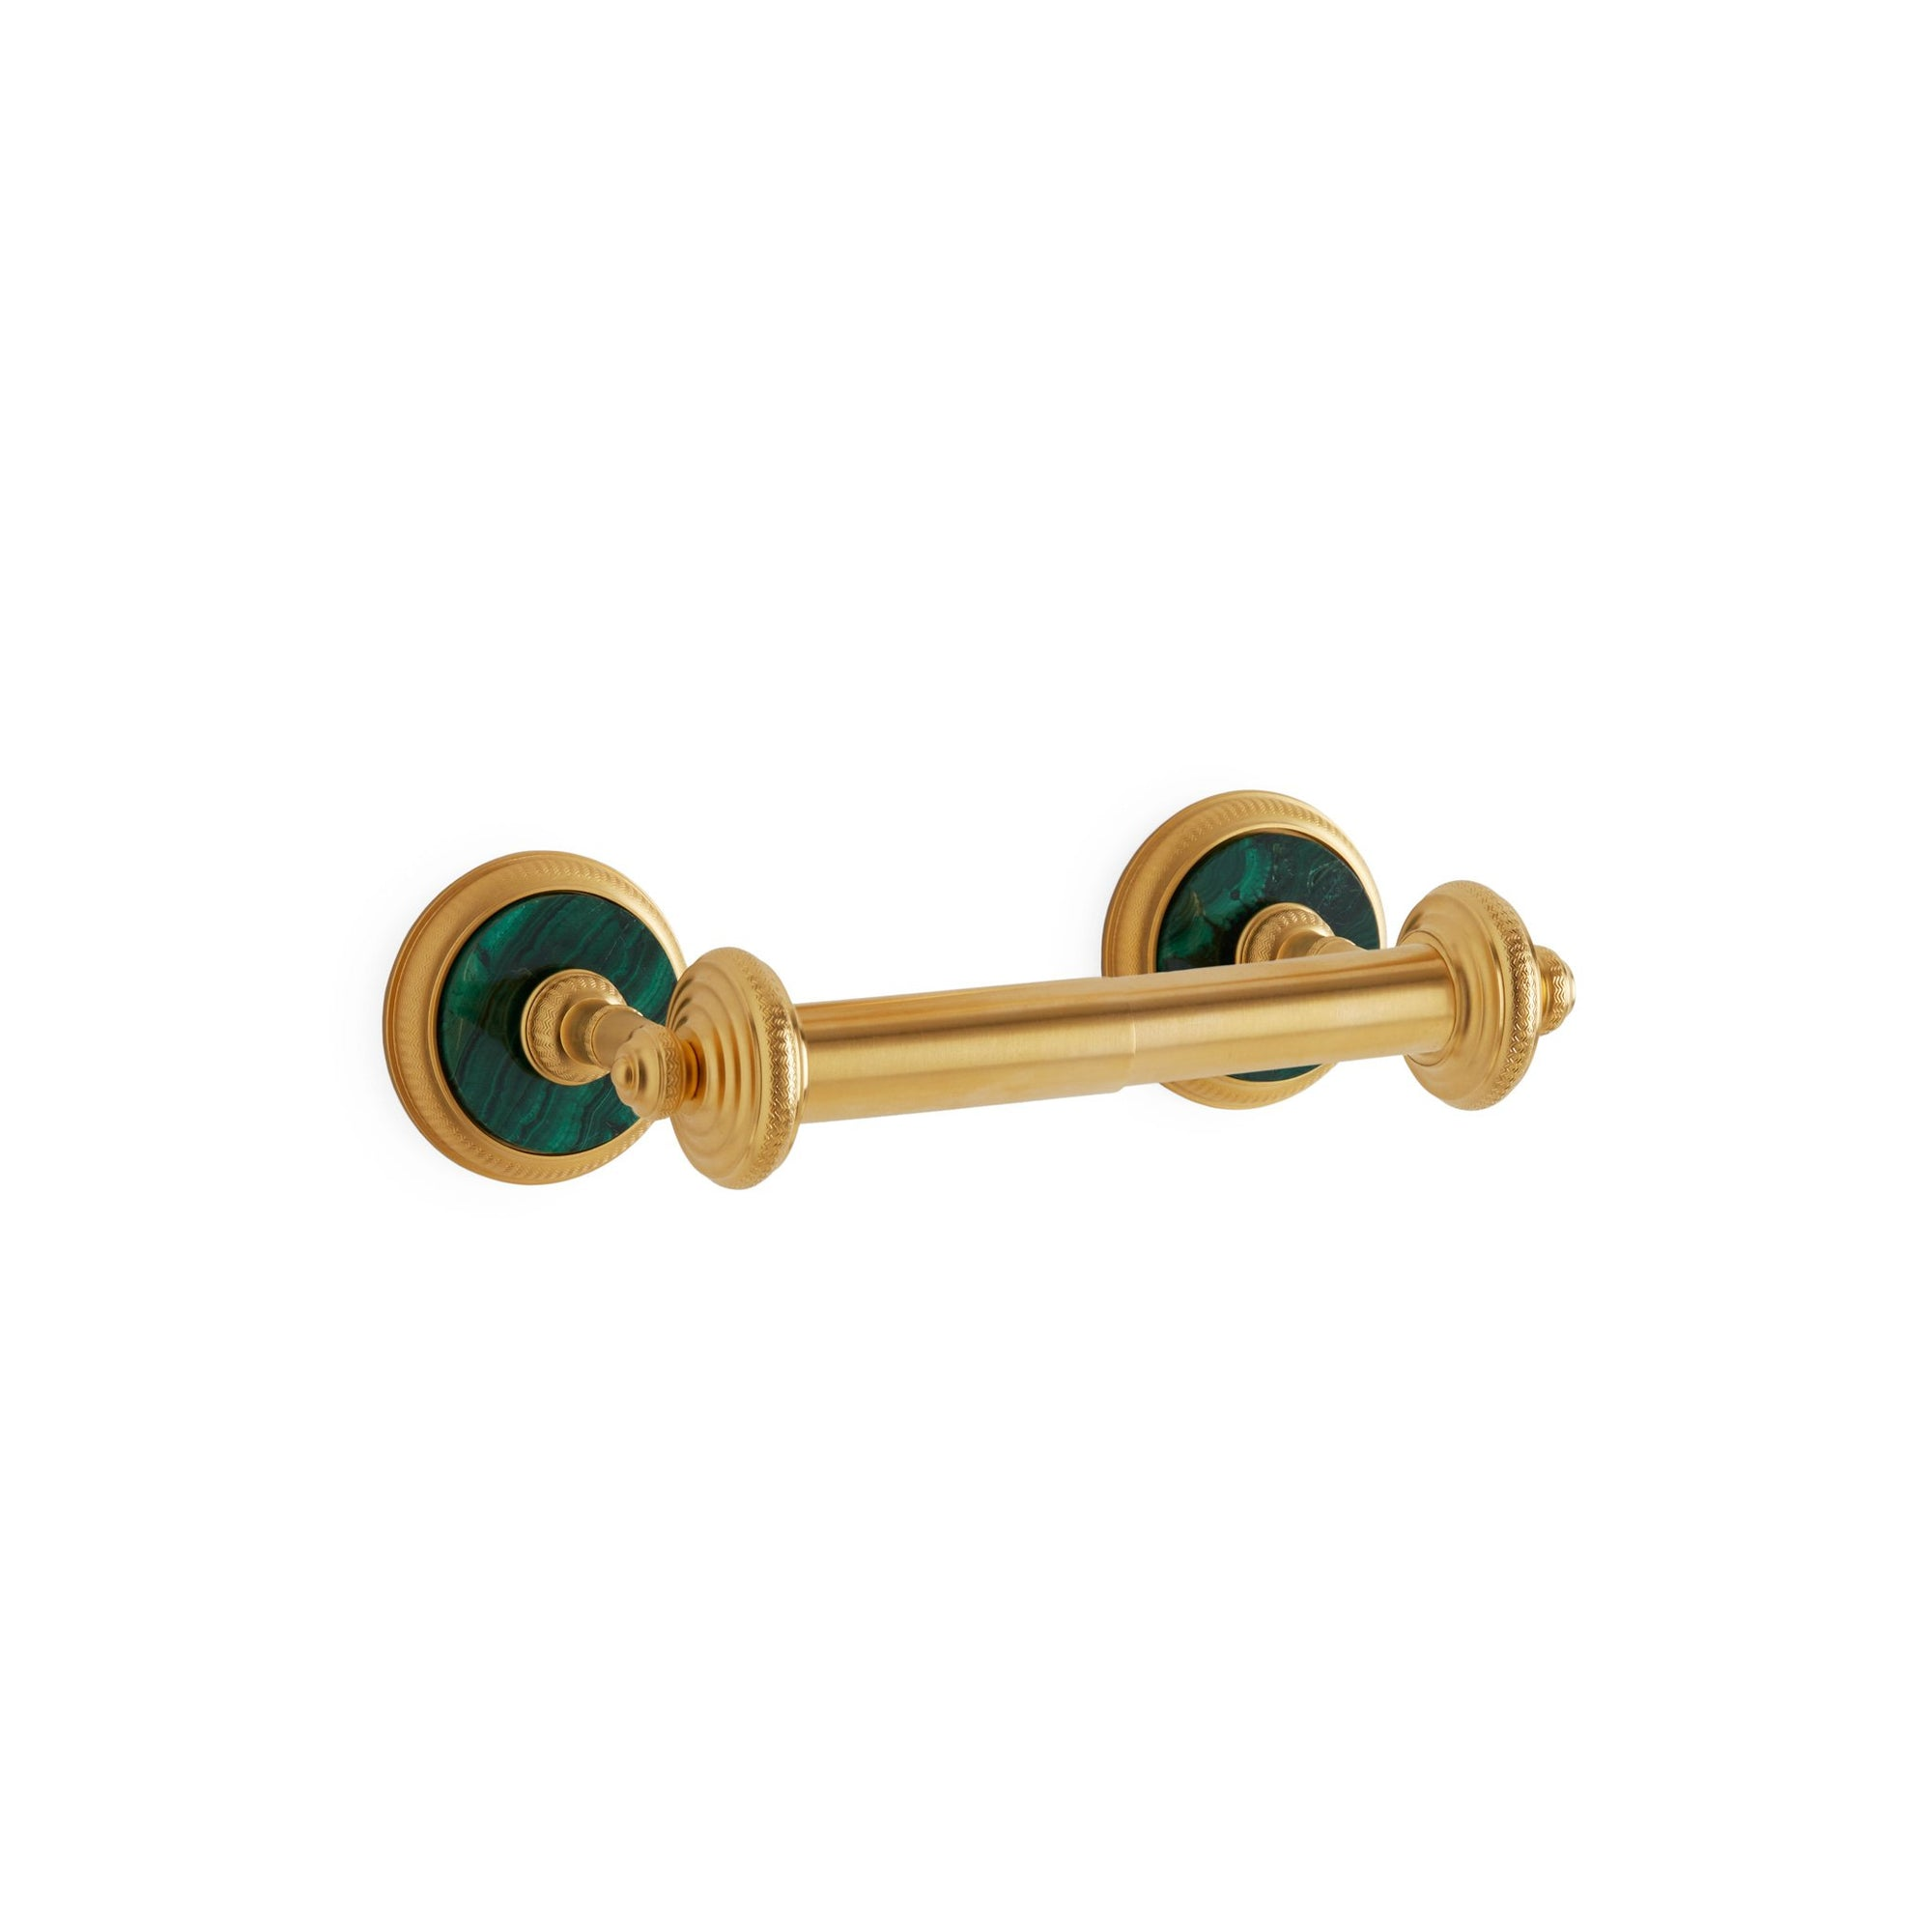 3535-DP-MALA-GP Sherle Wagner International Knurled Double Post Paper Holder with Malachite insert in Gold Plate metal finish